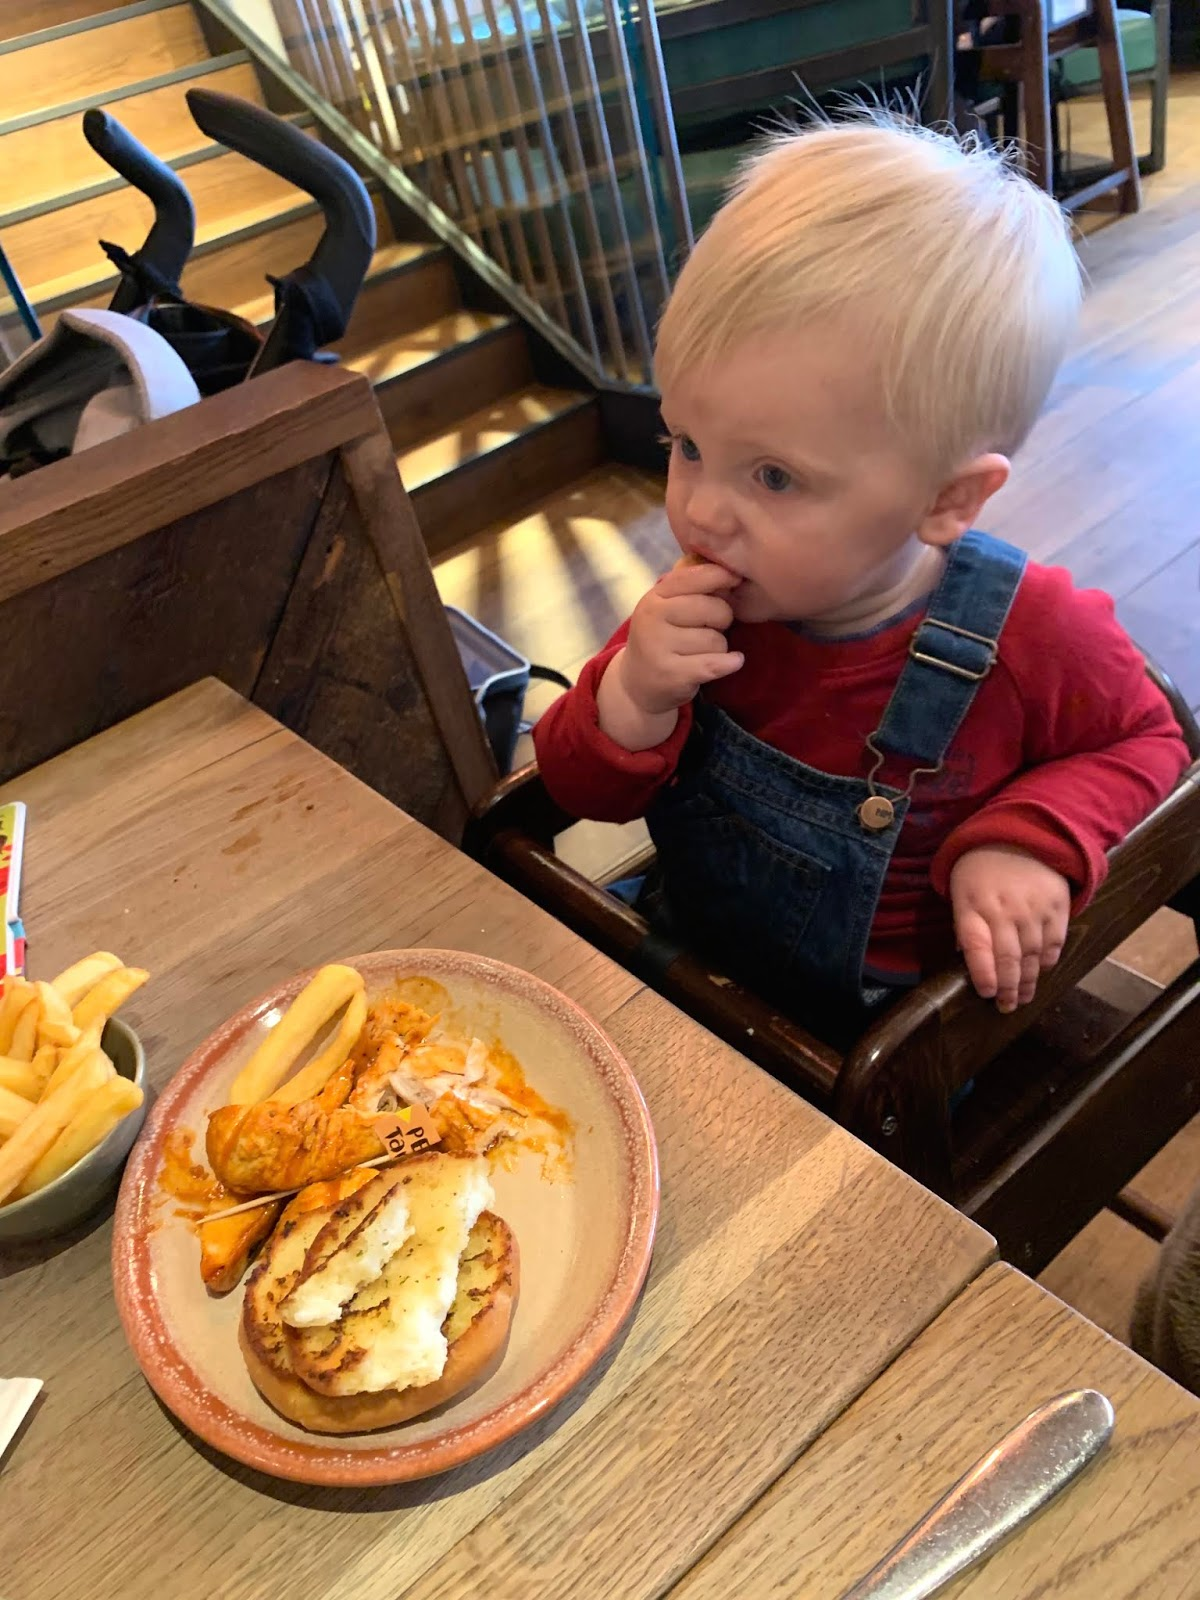 Baby reviewing Nandino's menu intu potteries